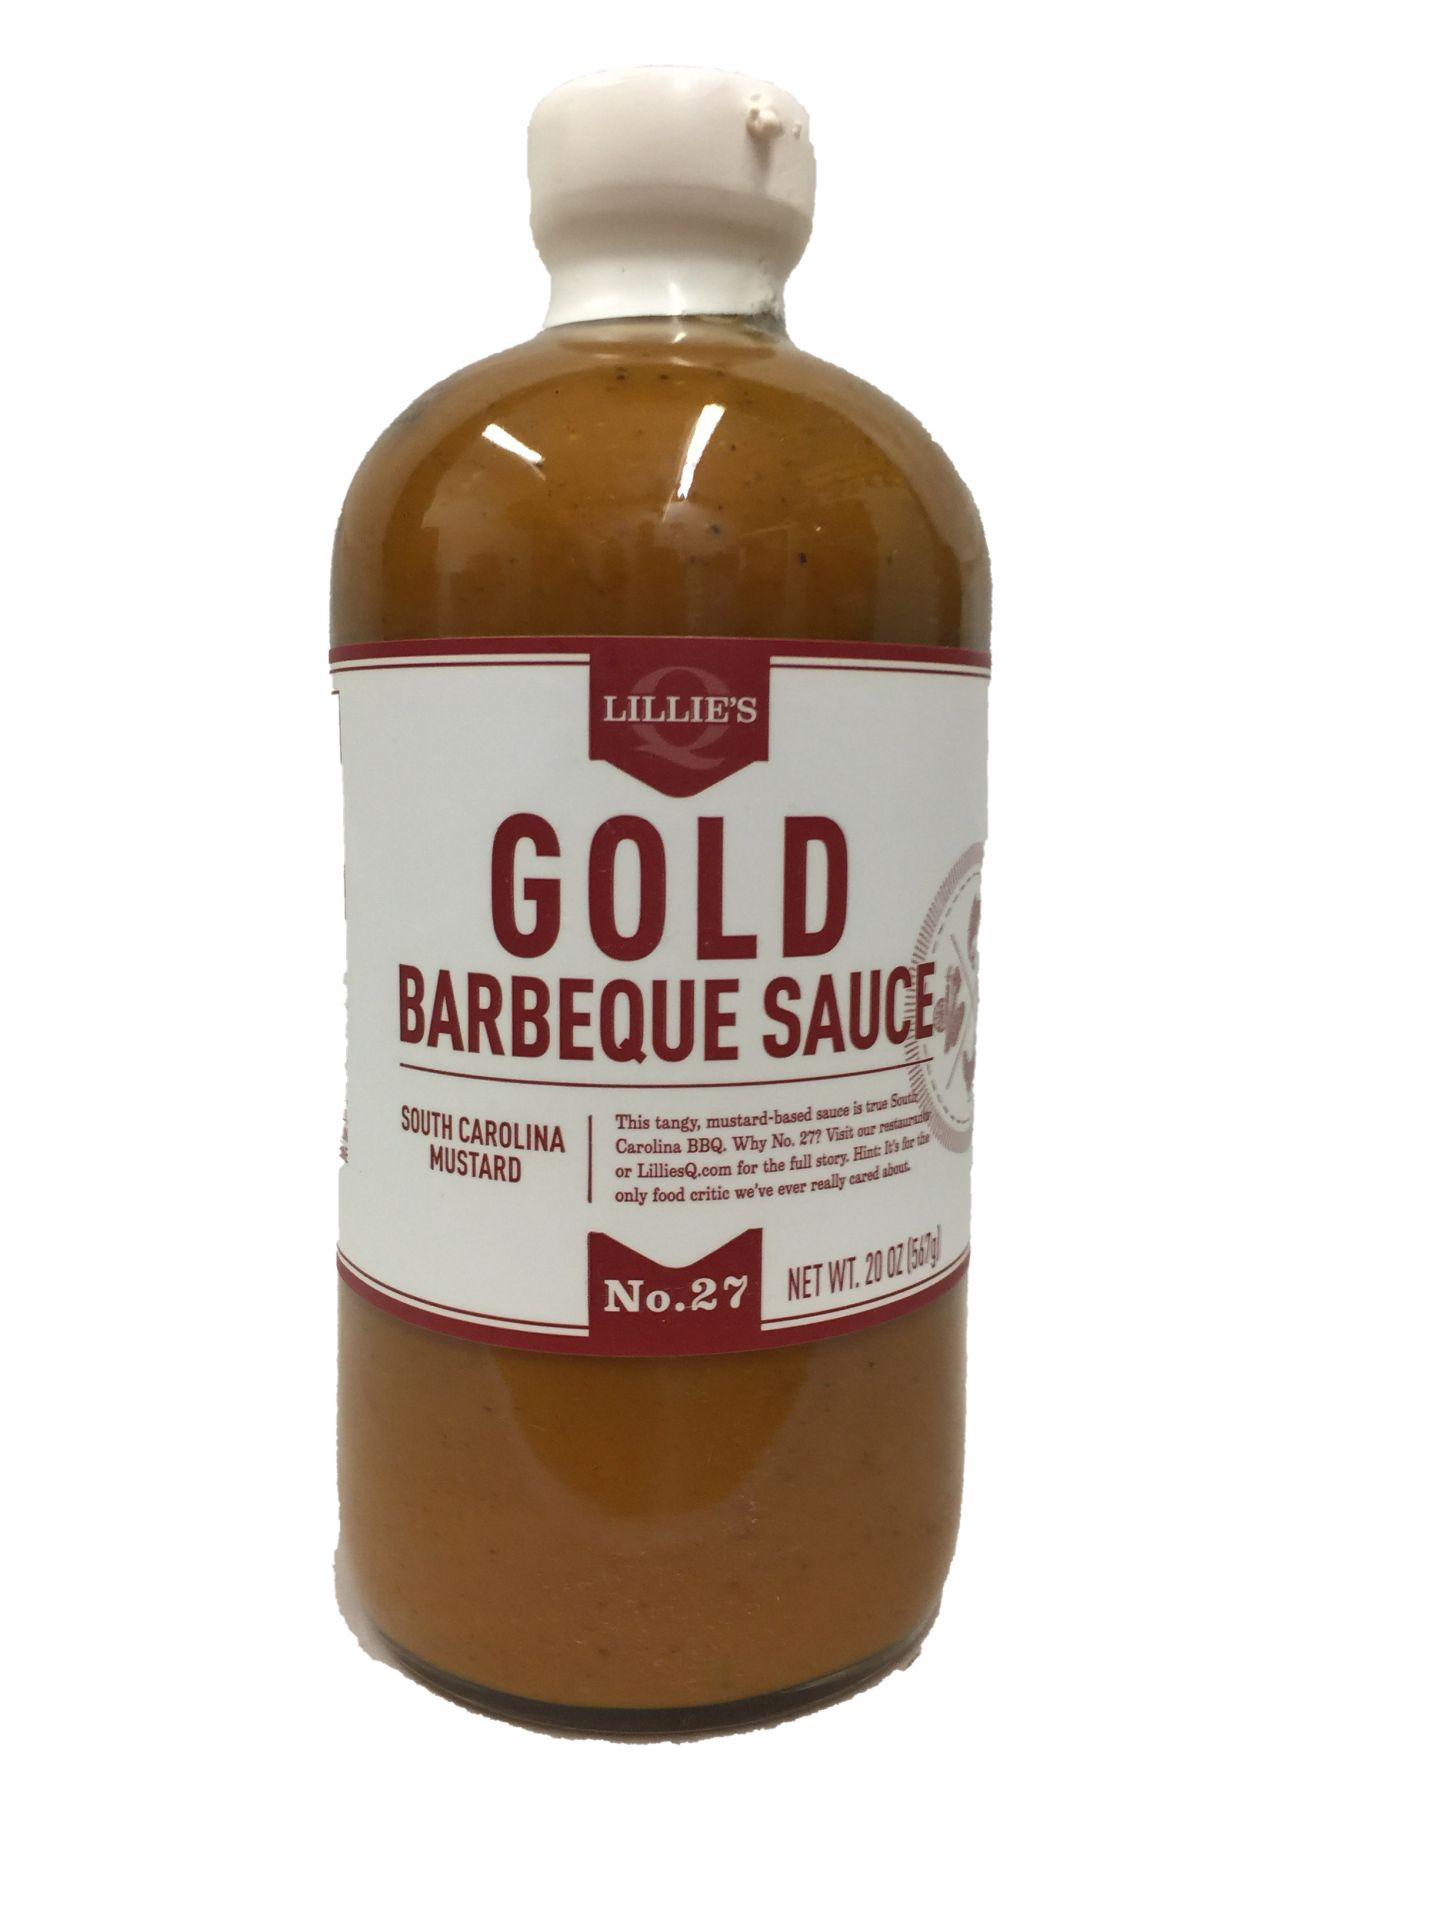 Lillie's Gold Barbeque Sauce